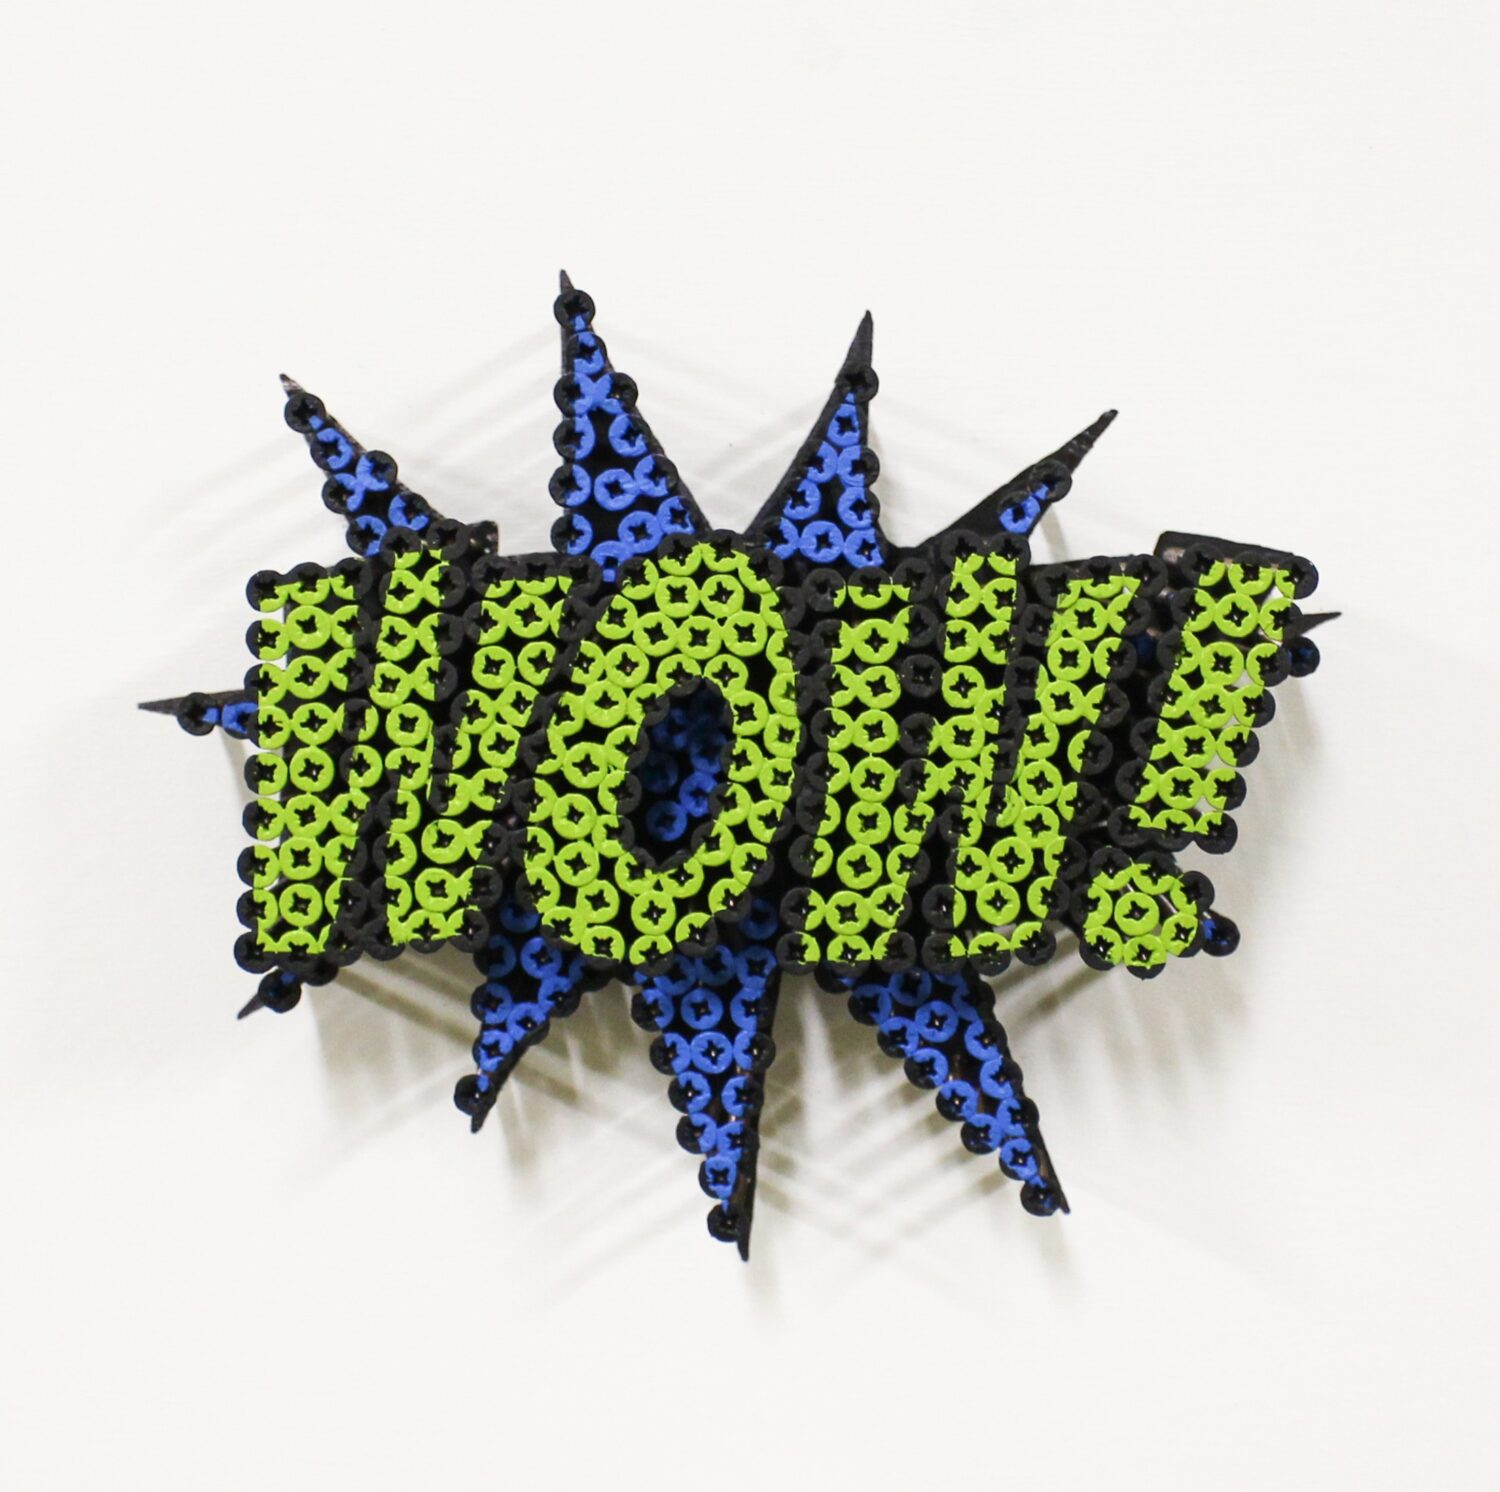 Alessandro Padovan - Screw art - Mini Wow blauw